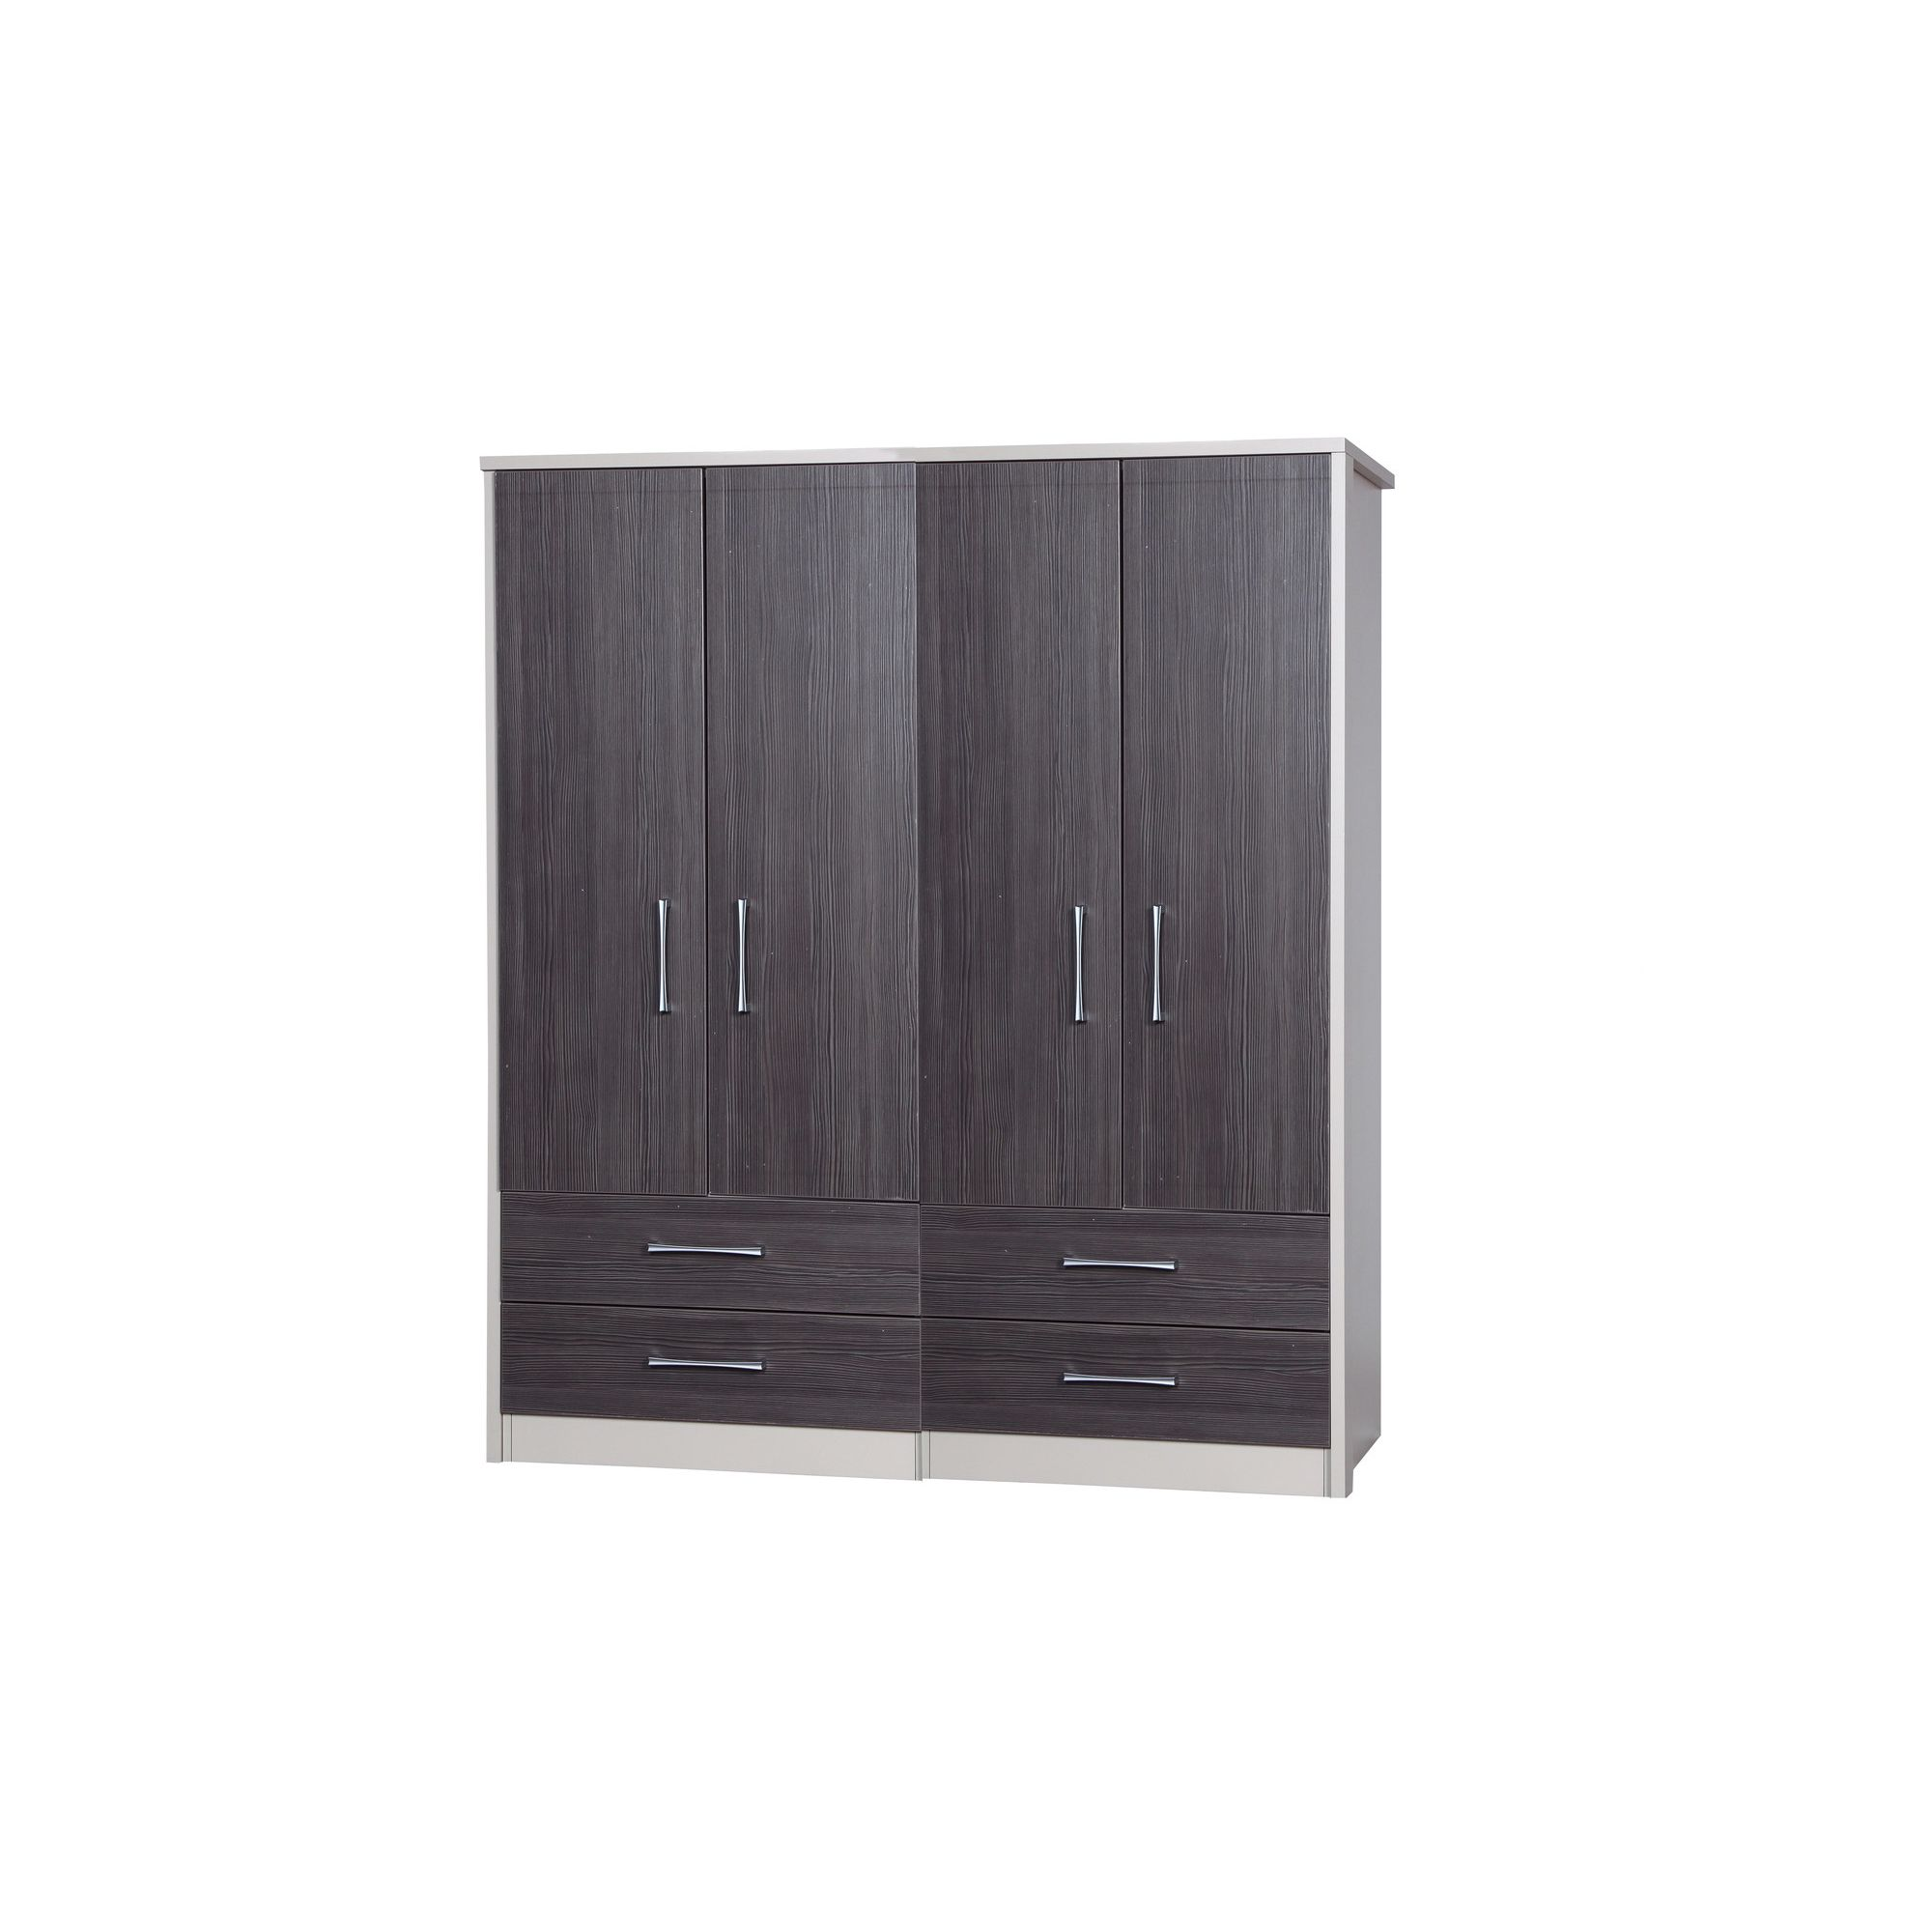 Alto Furniture Avola 4 Door Combi Wardrobe - Cream Carcass With Grey Avola at Tesco Direct